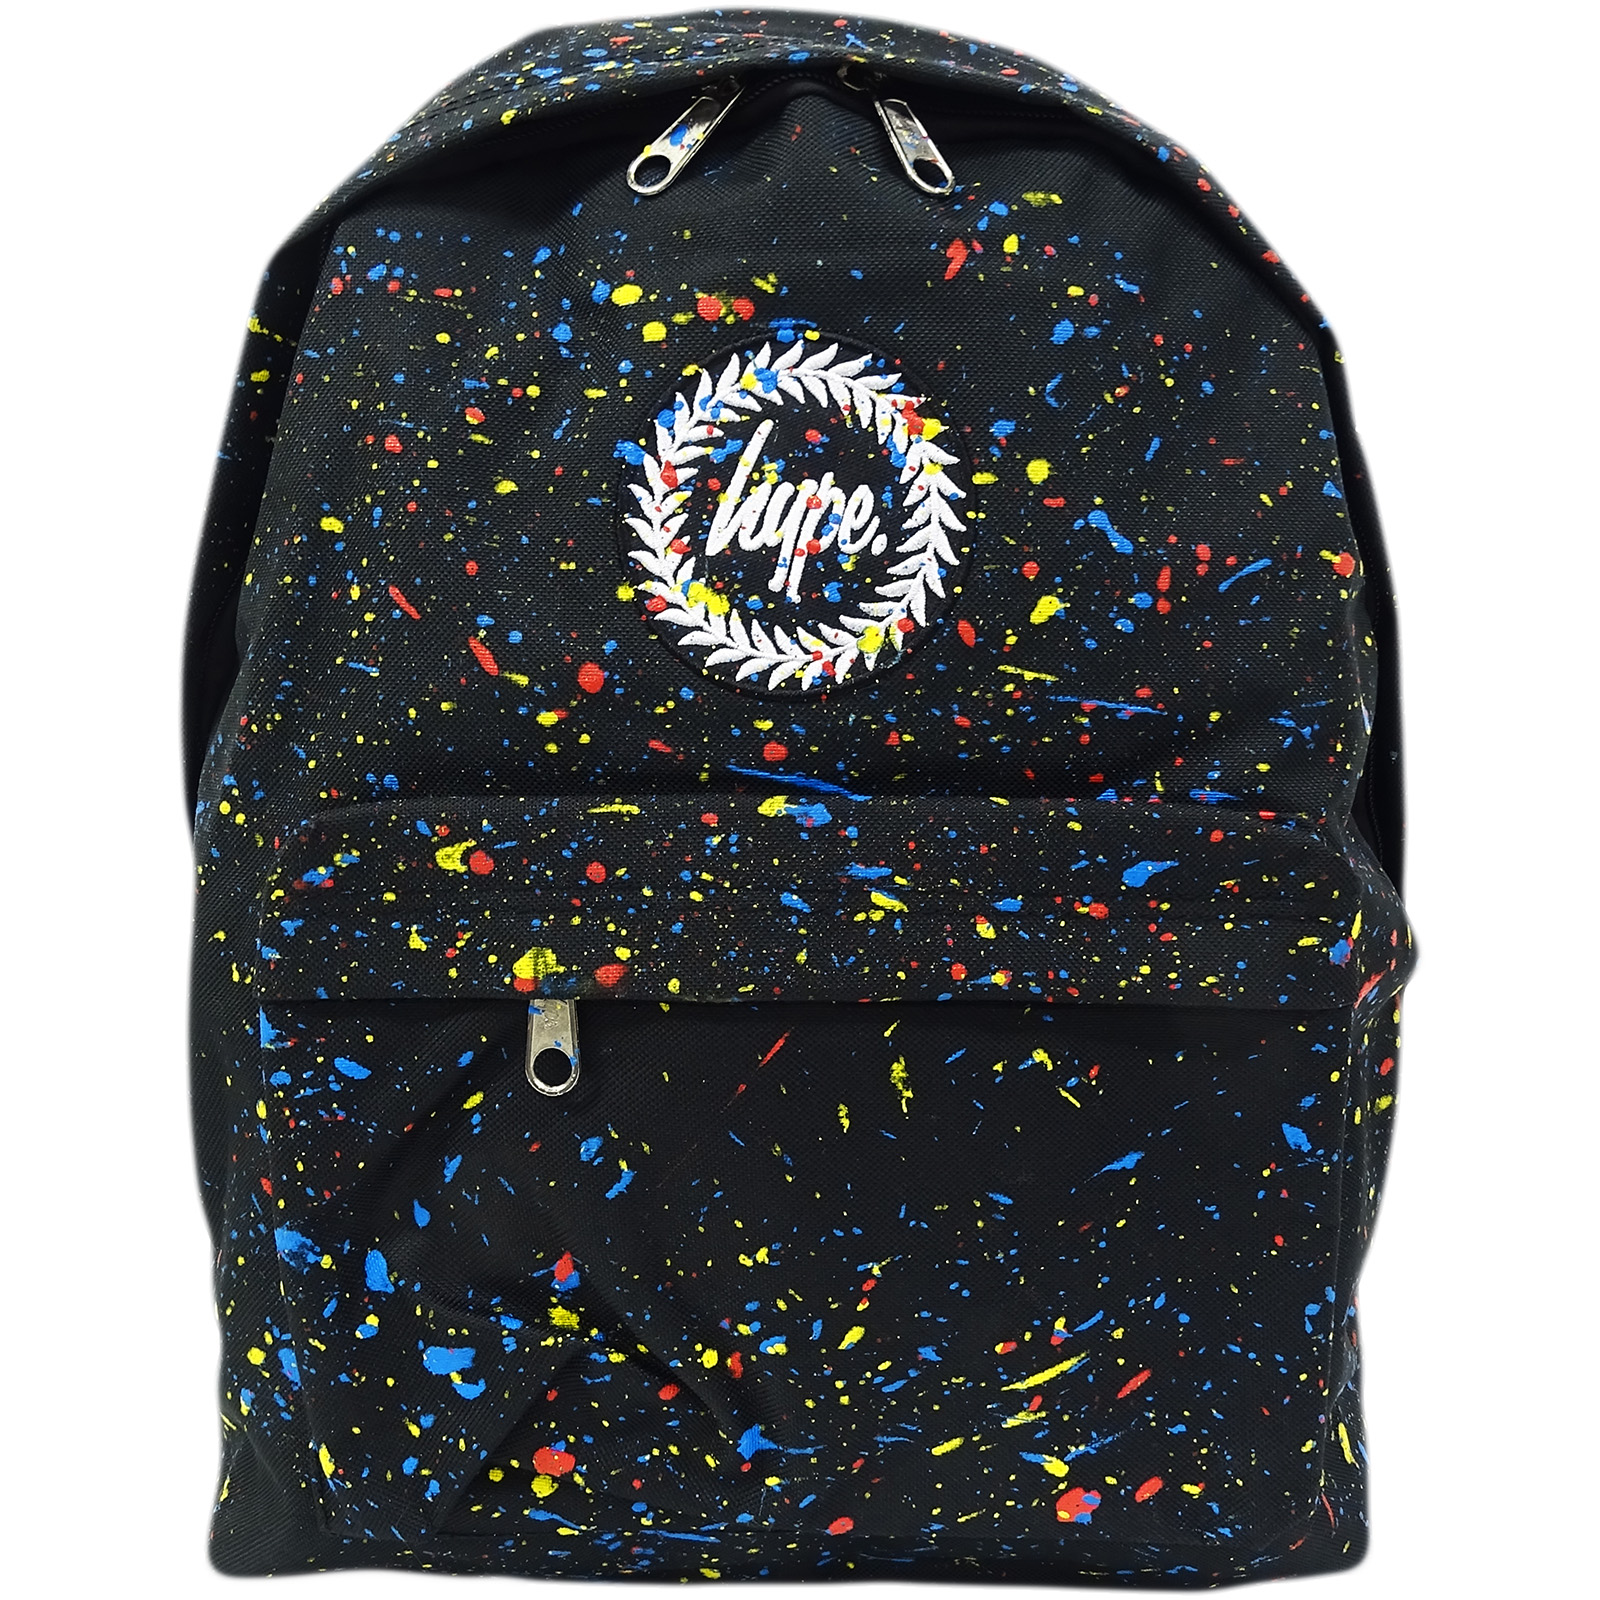 Hype Black Backpack / Rucksack Bag Primary Black